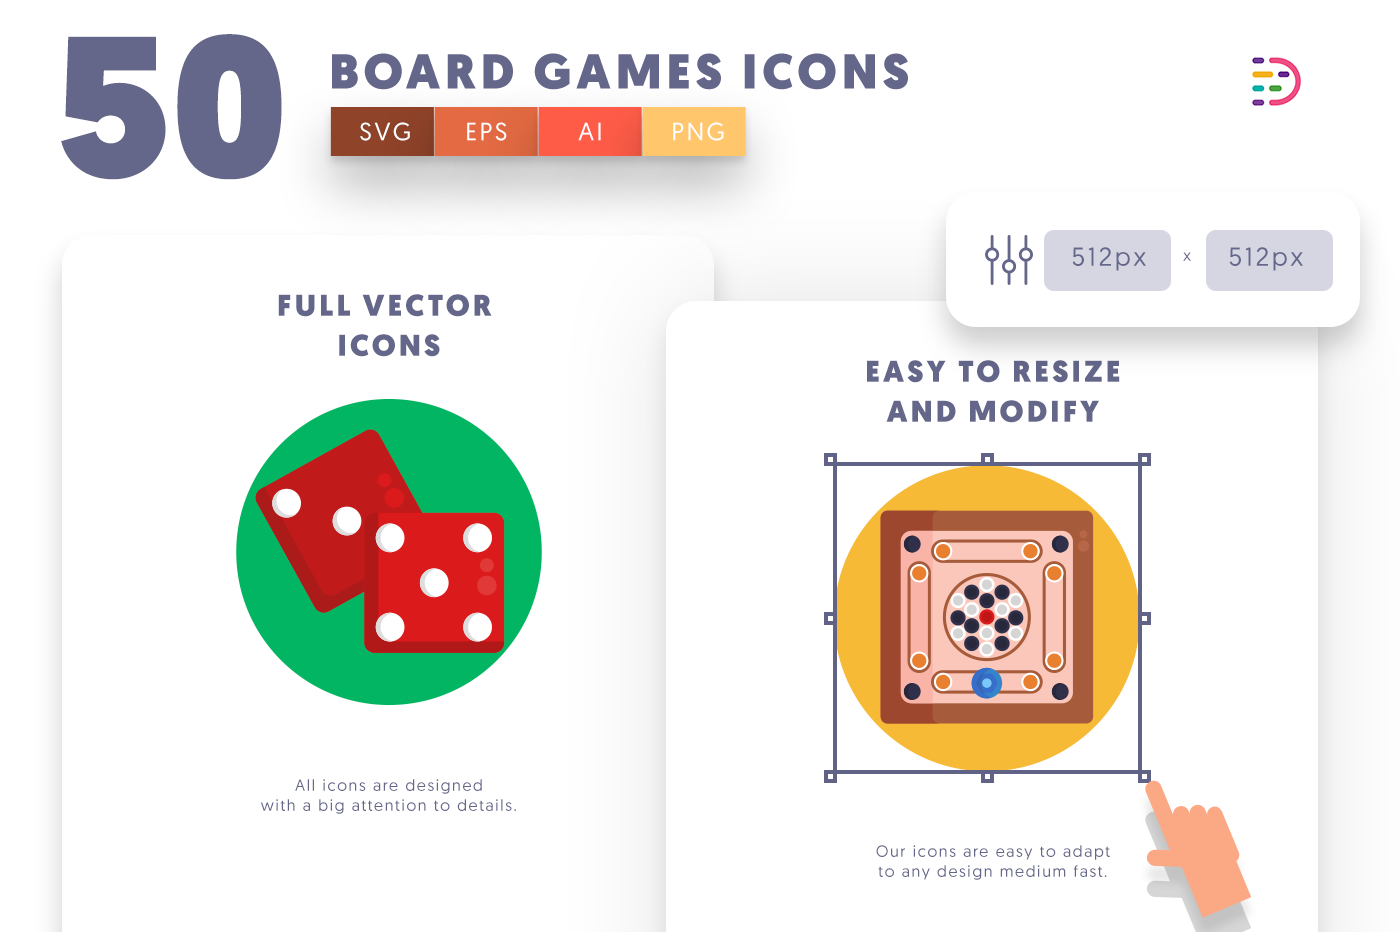 Full vector 50BoardGames Icons